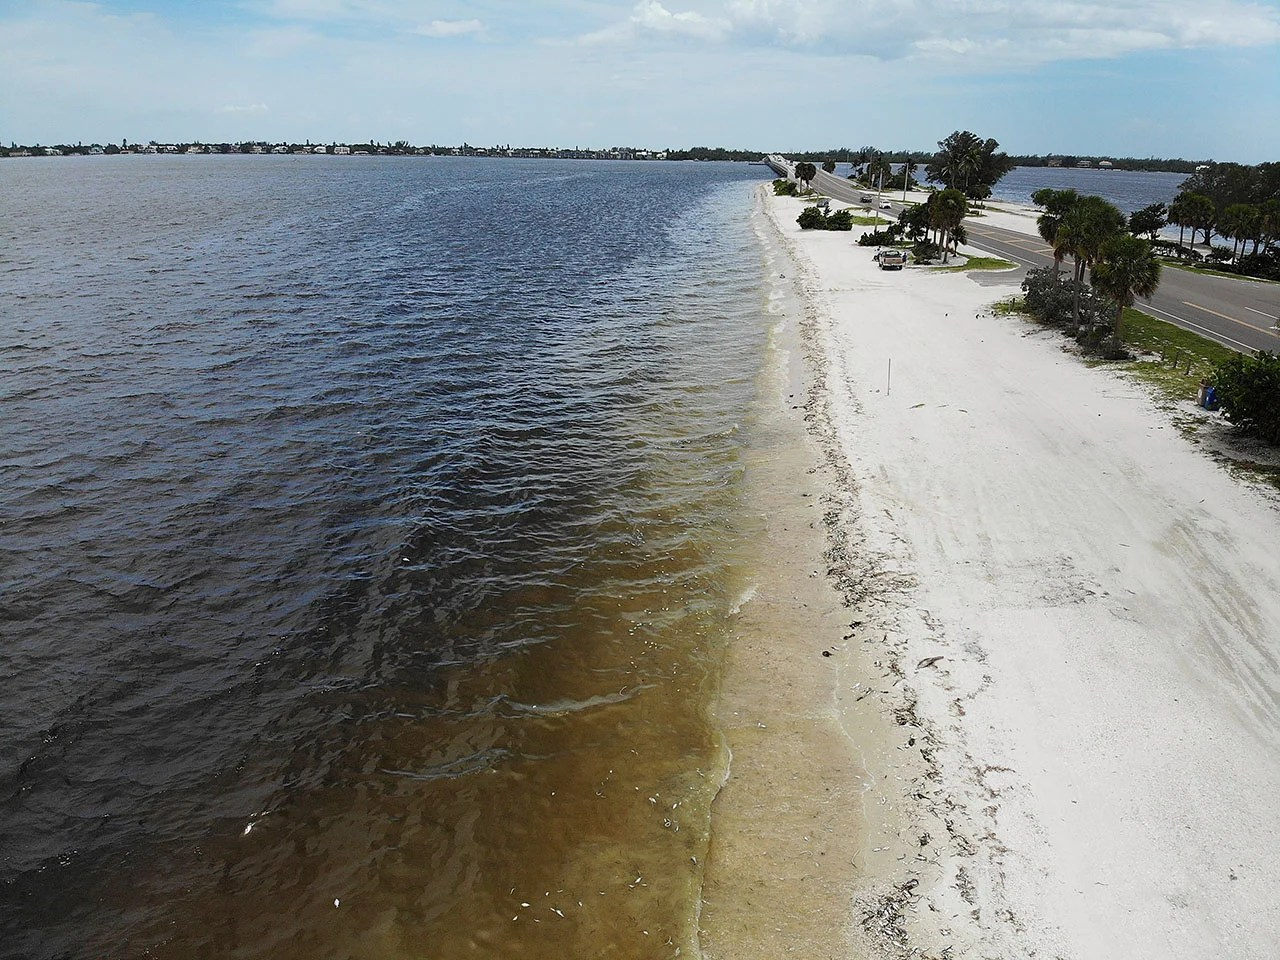 Dead fish line the shoreline along the Sanibel causeway. (Photo by Joe Raedle/Getty Images)